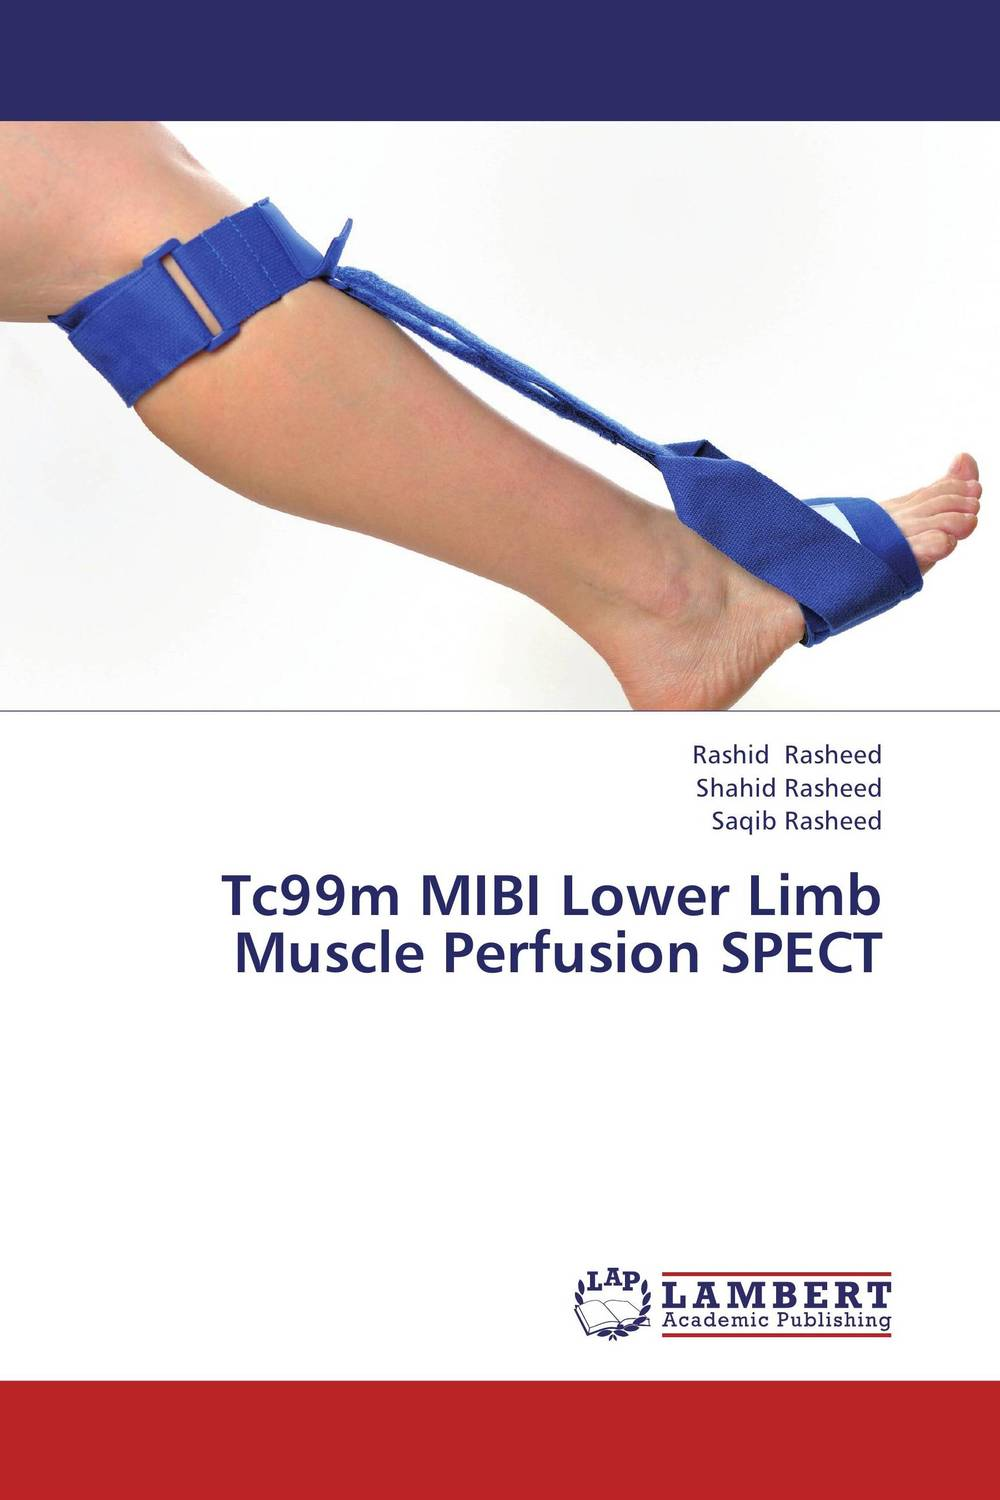 Tc99m MIBI Lower Limb Muscle Perfusion SPECT 5boxes 10pcs prostatitis pad to treat prostate disease sexual dysfunction of male pad urological pad painful urination